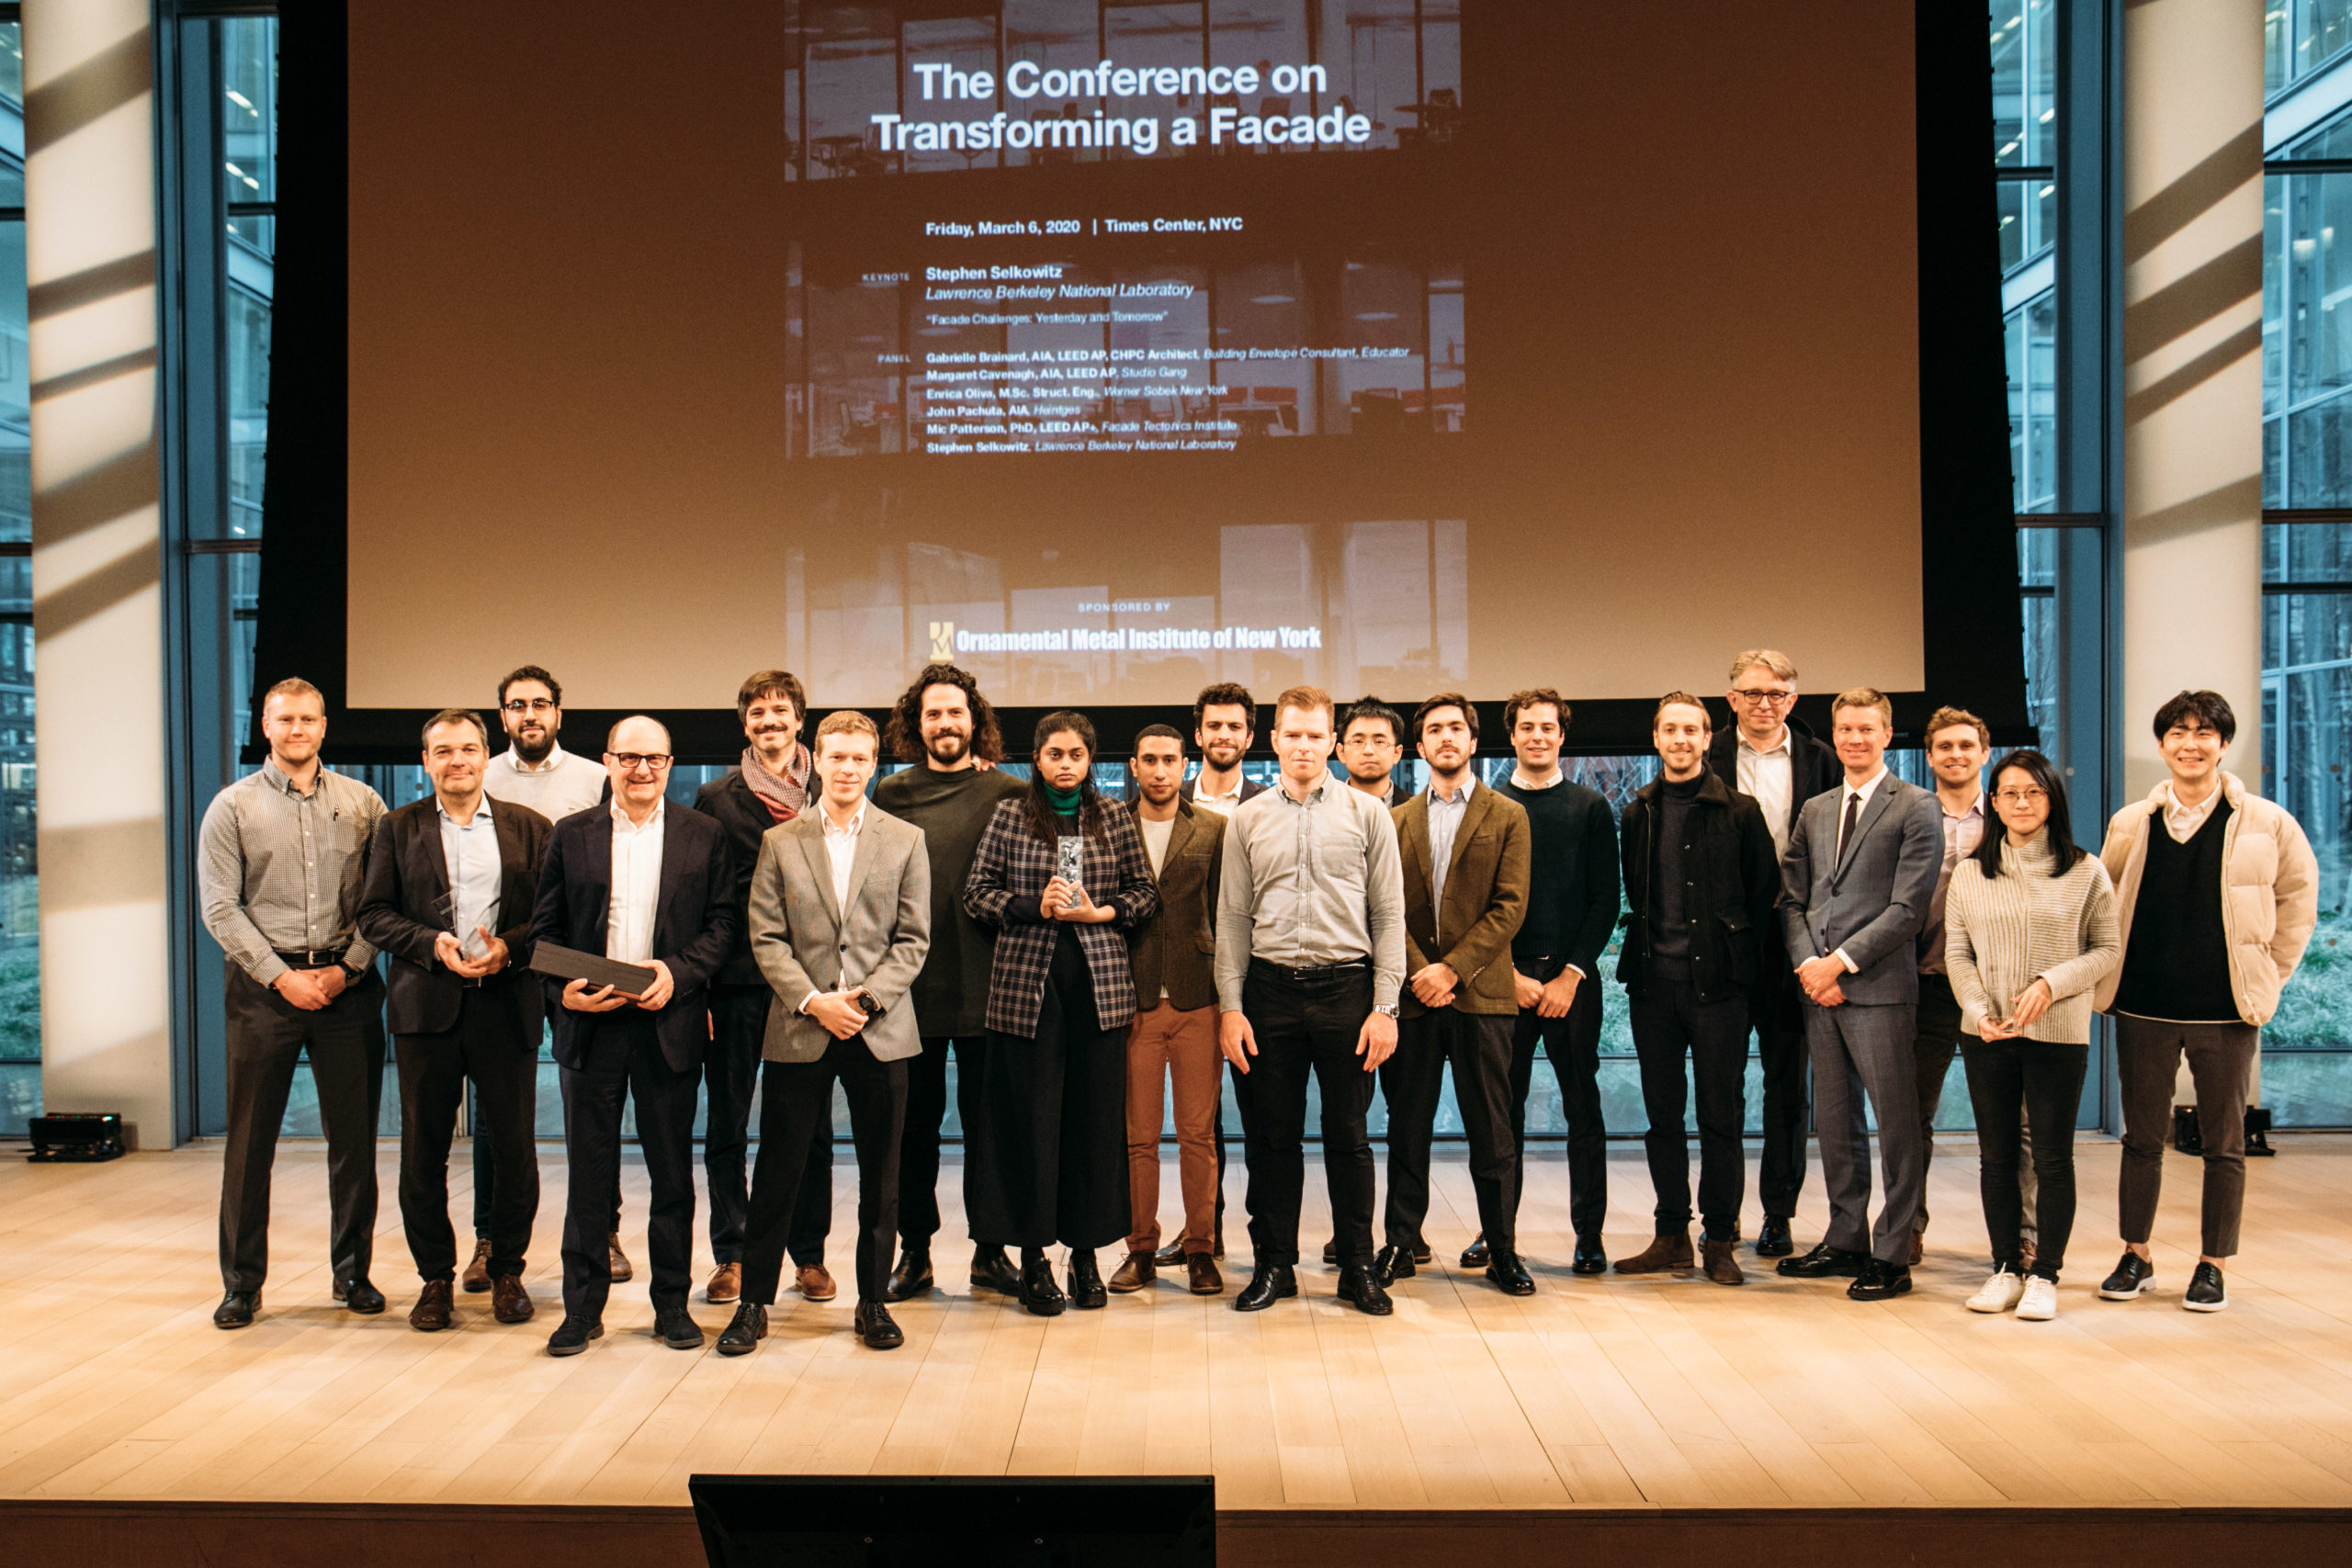 jury, winners, and finalists in attendance at the 2020 Design Challenge awards ceremony.